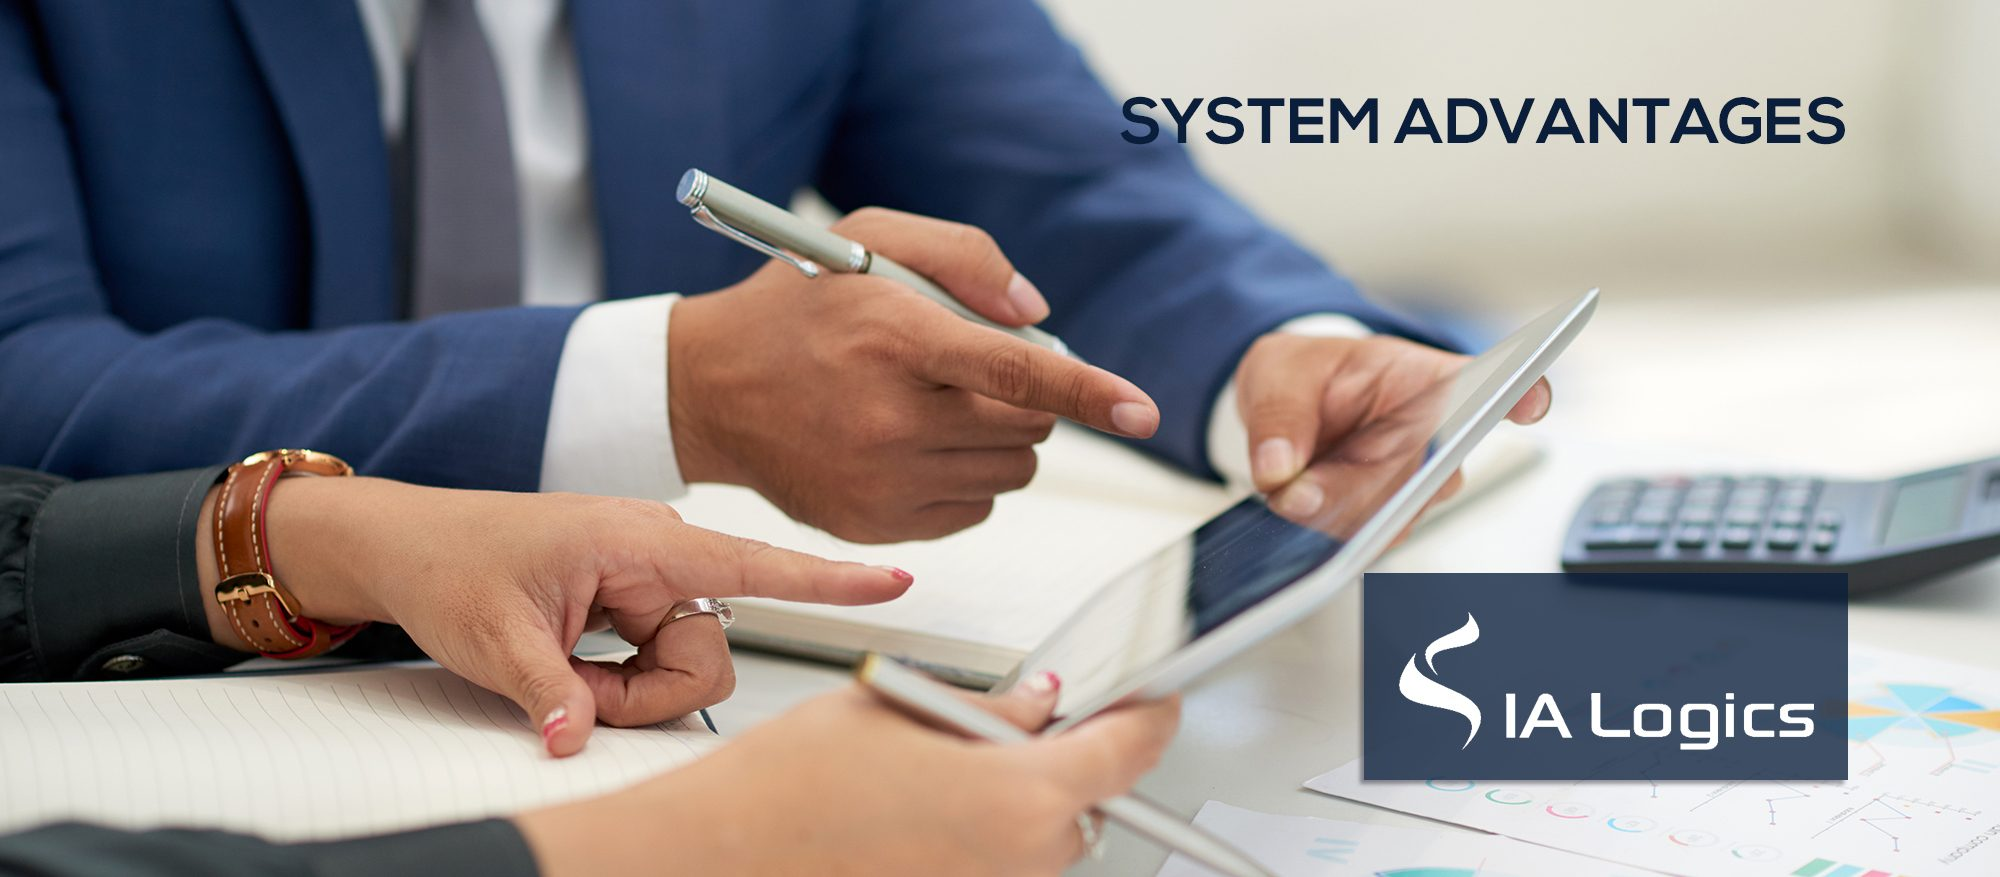 System Advantages